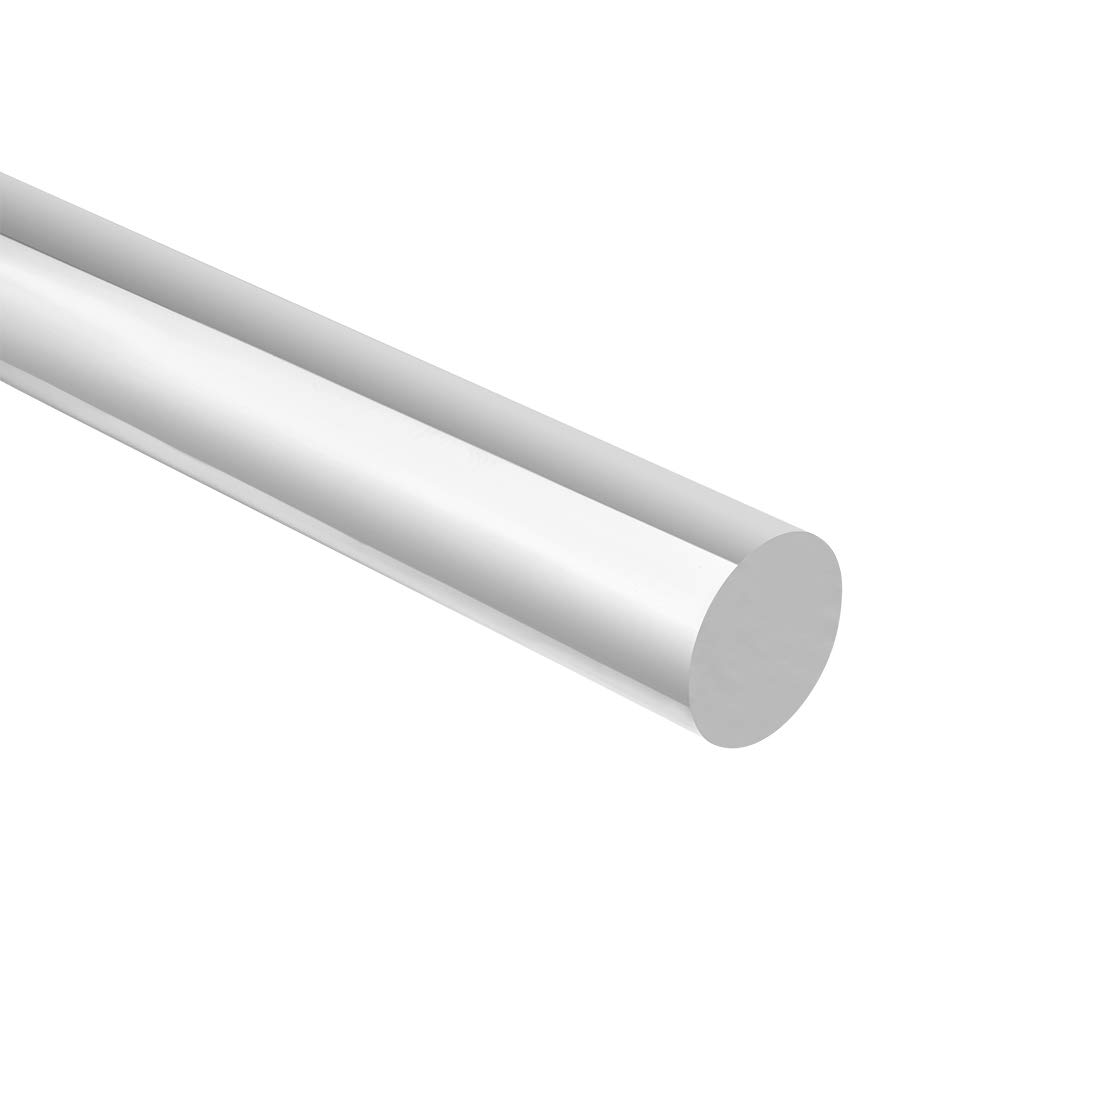 uxcell 8mmx500mm Round Shape Solid Acrylic Rod PMMA Extruded Bar Clear